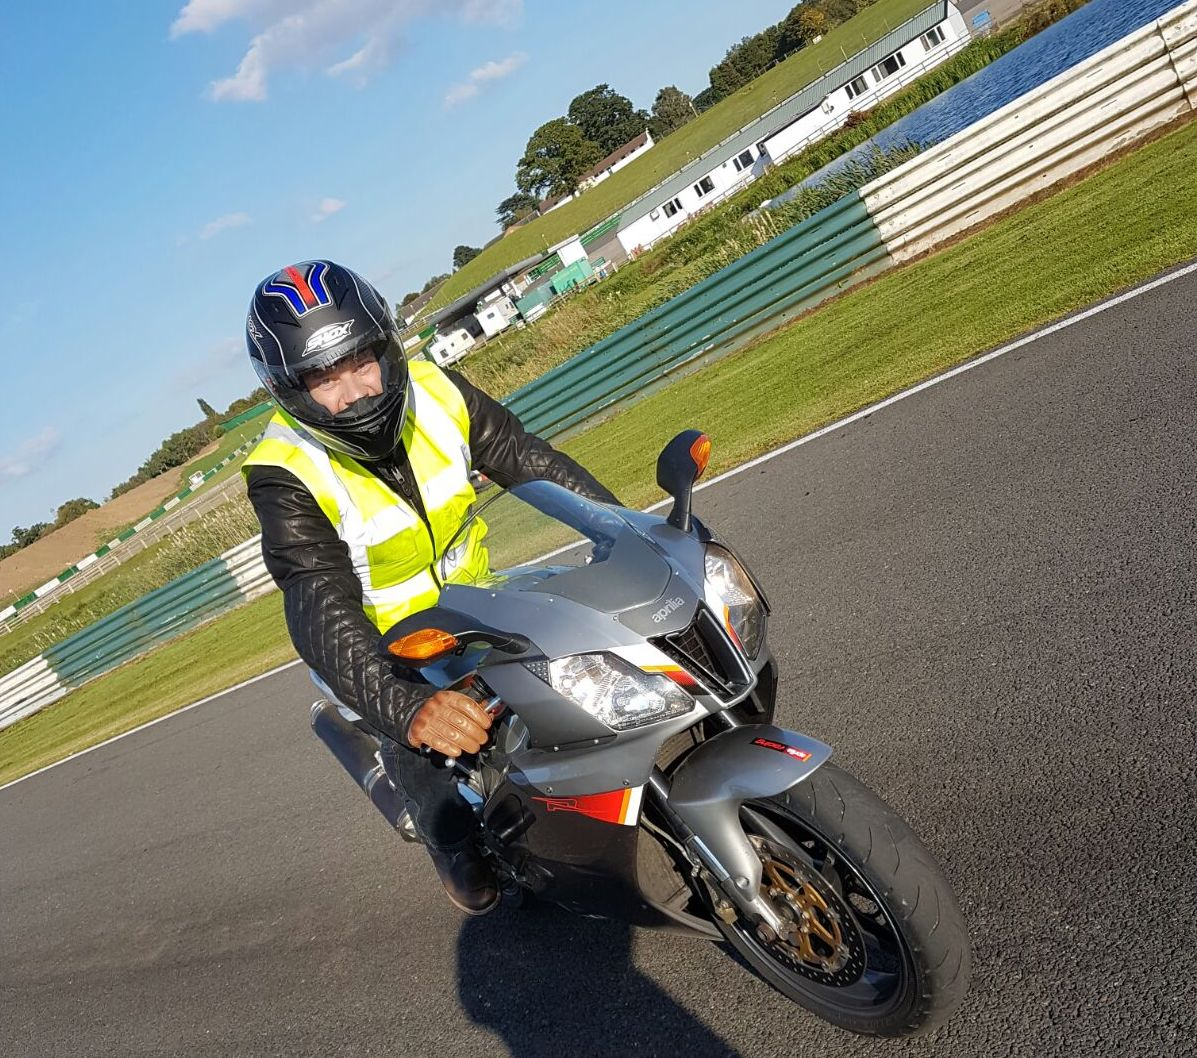 Theory Test, CBT, Direct access motorcycle training Slough, Oxford, Reading, Milton Keynes, Cambridge